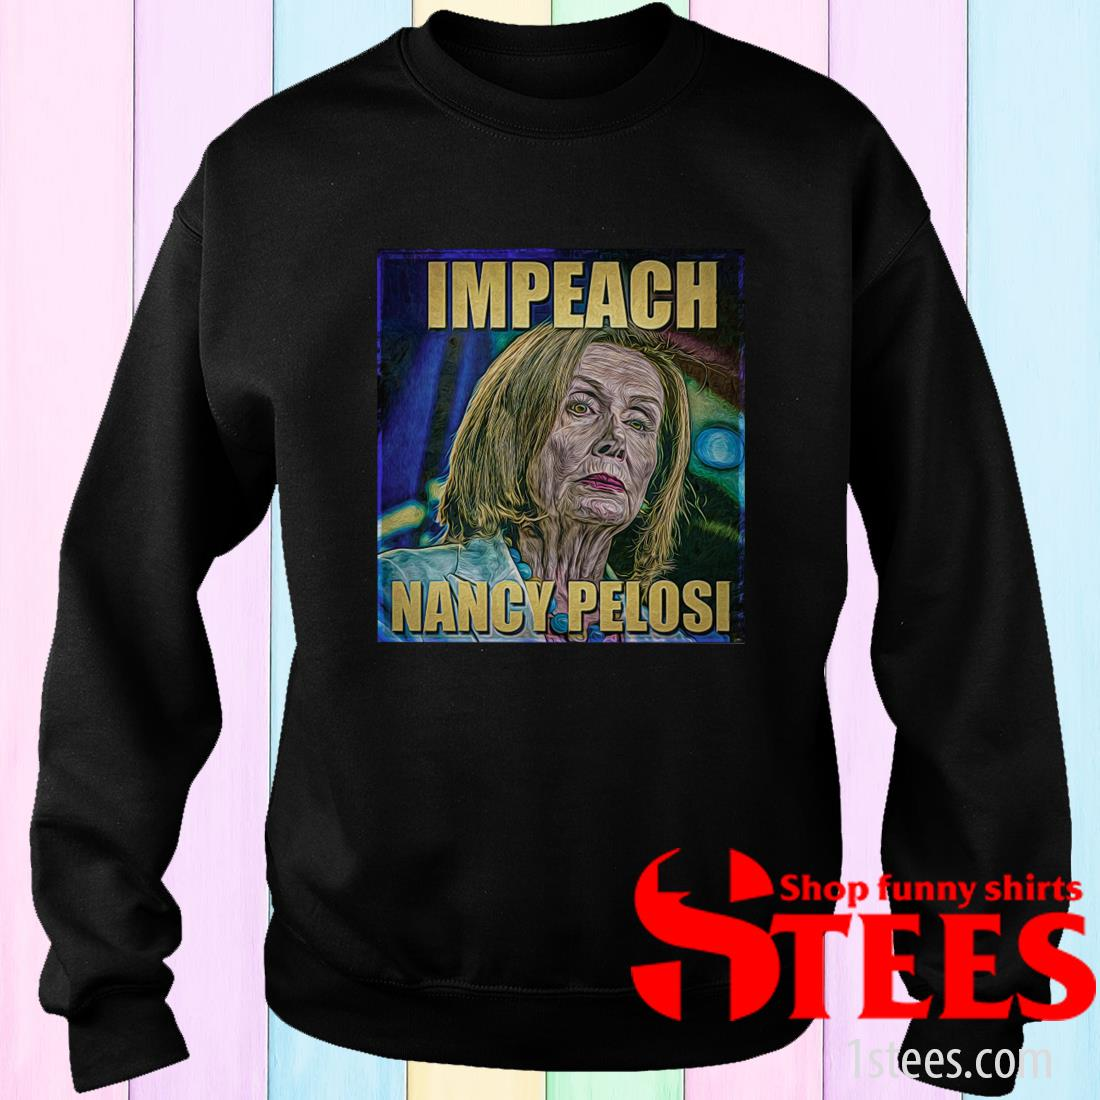 Trump Impeach Nancy Pelosi Sweatshirt